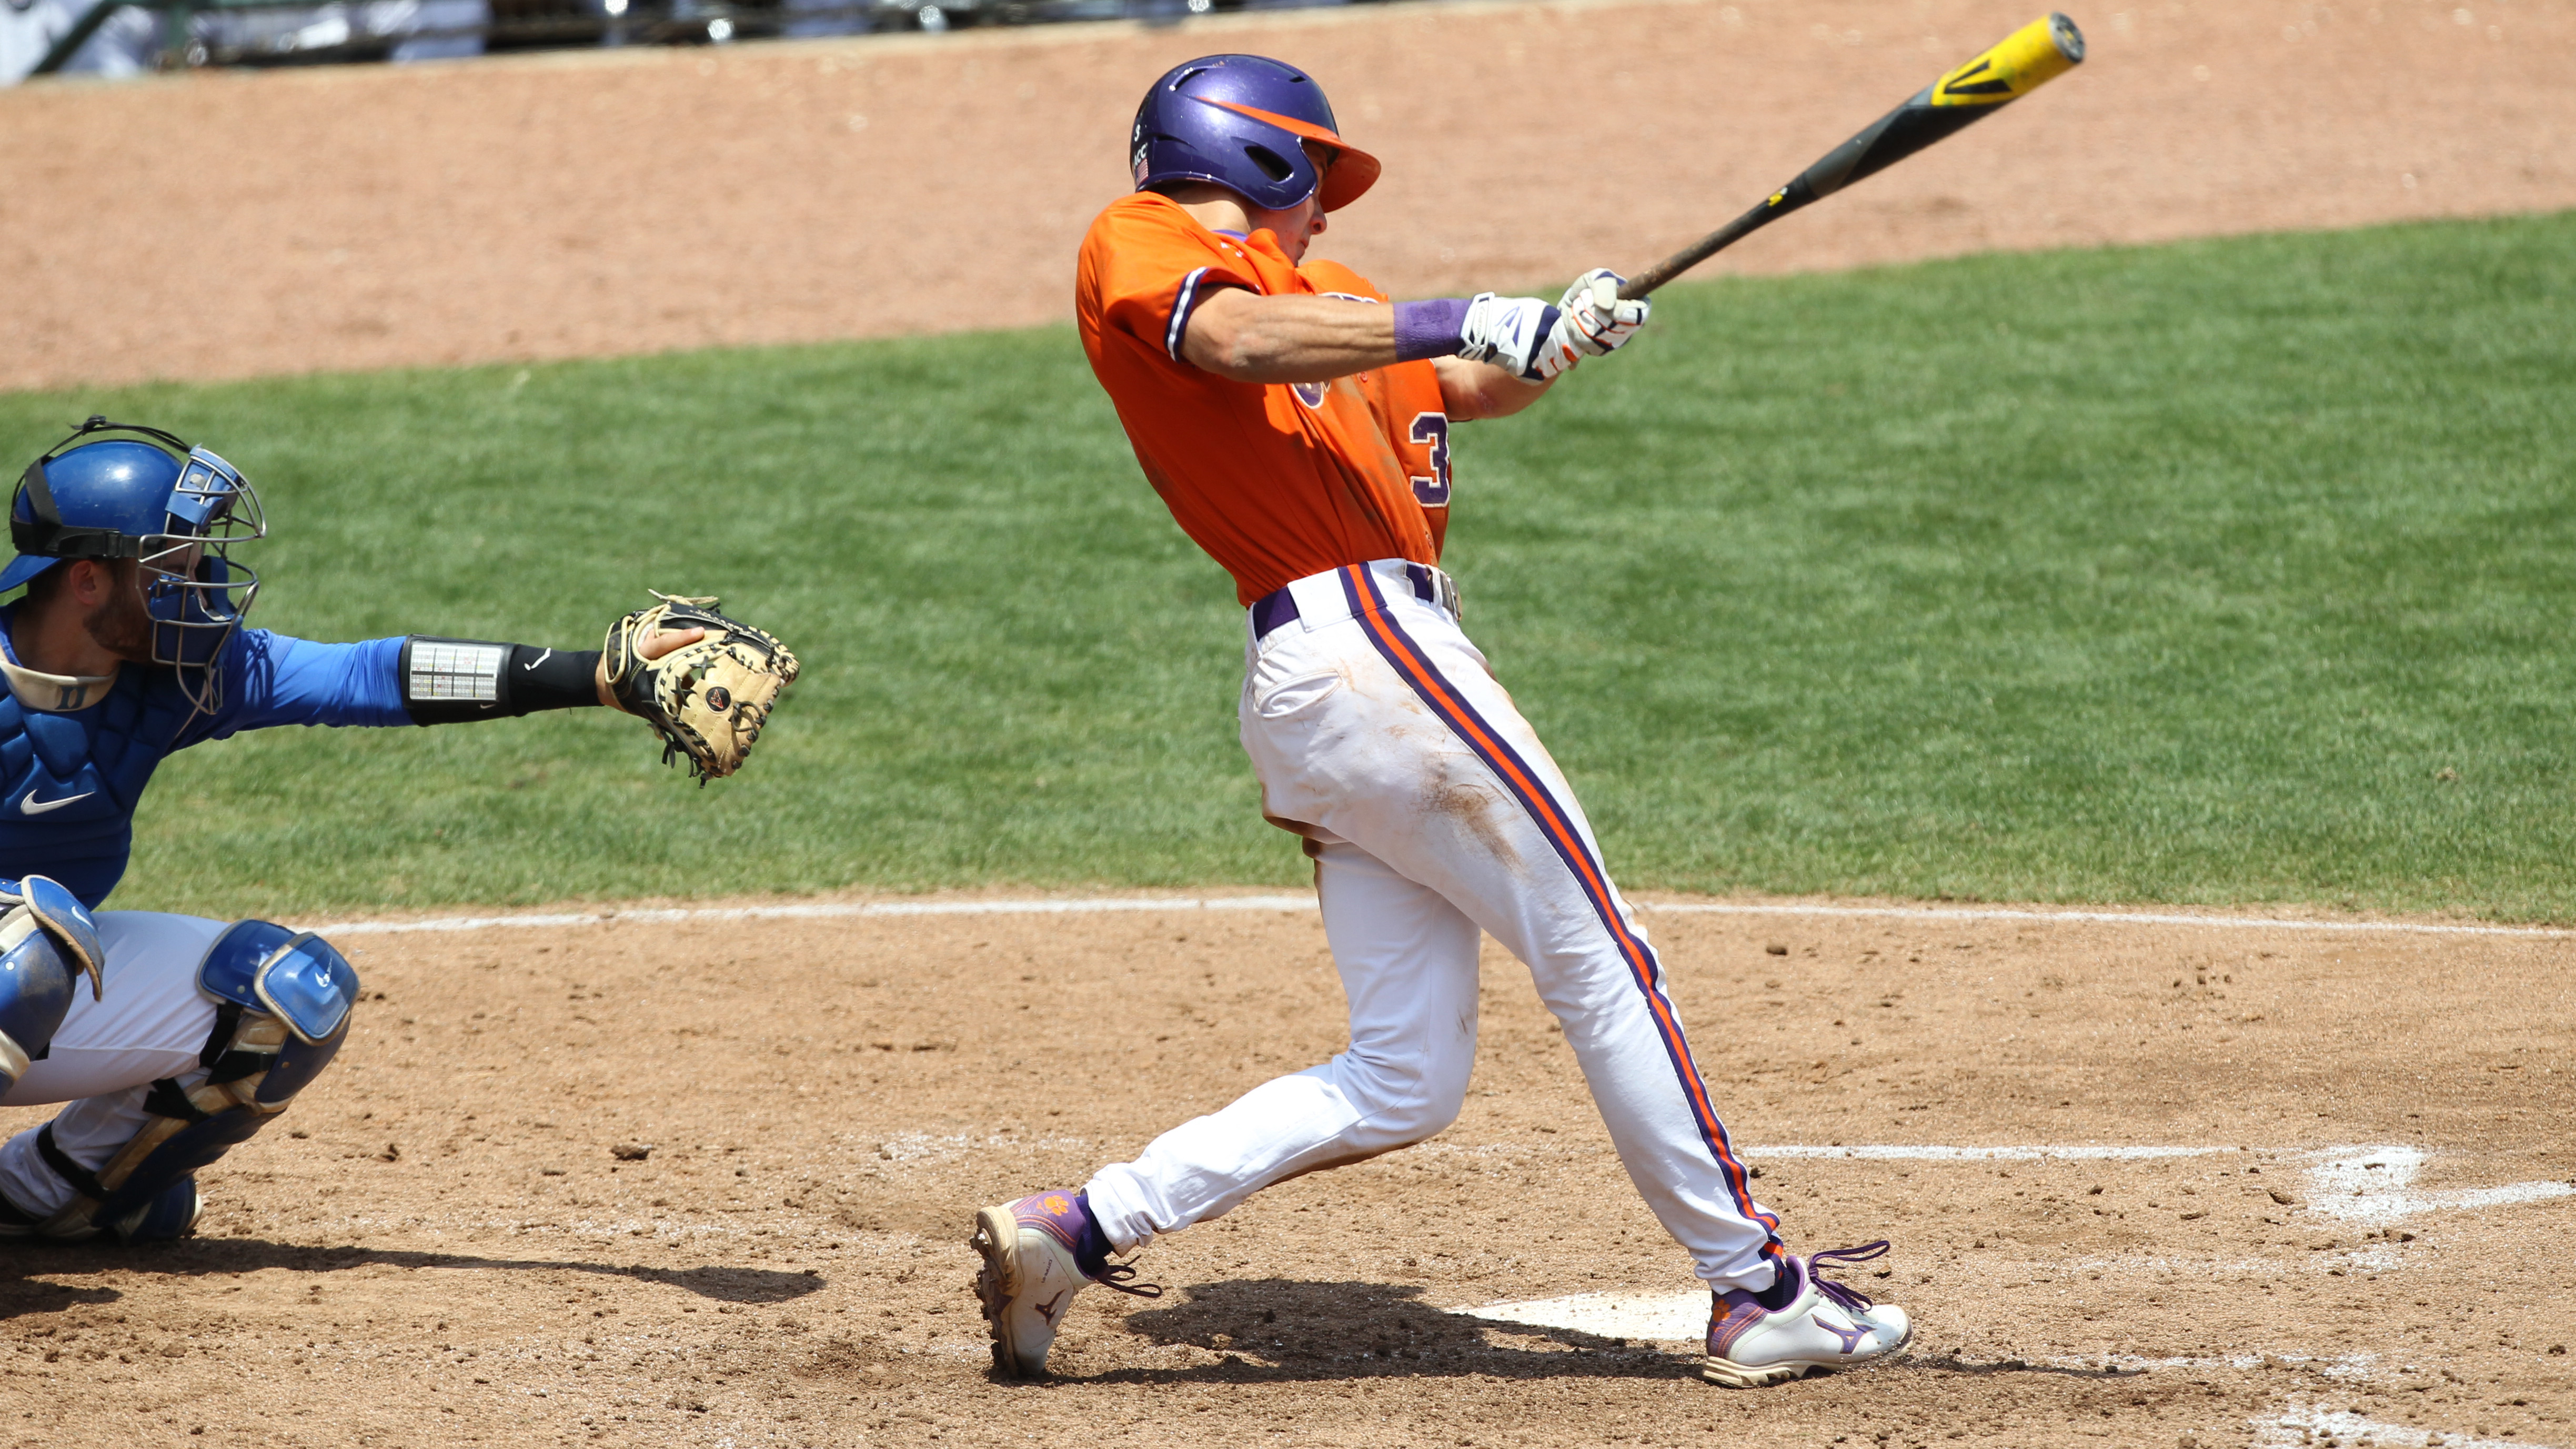 Tigers Rally to Down Duke 5-3 in ACC Opener Wednesday